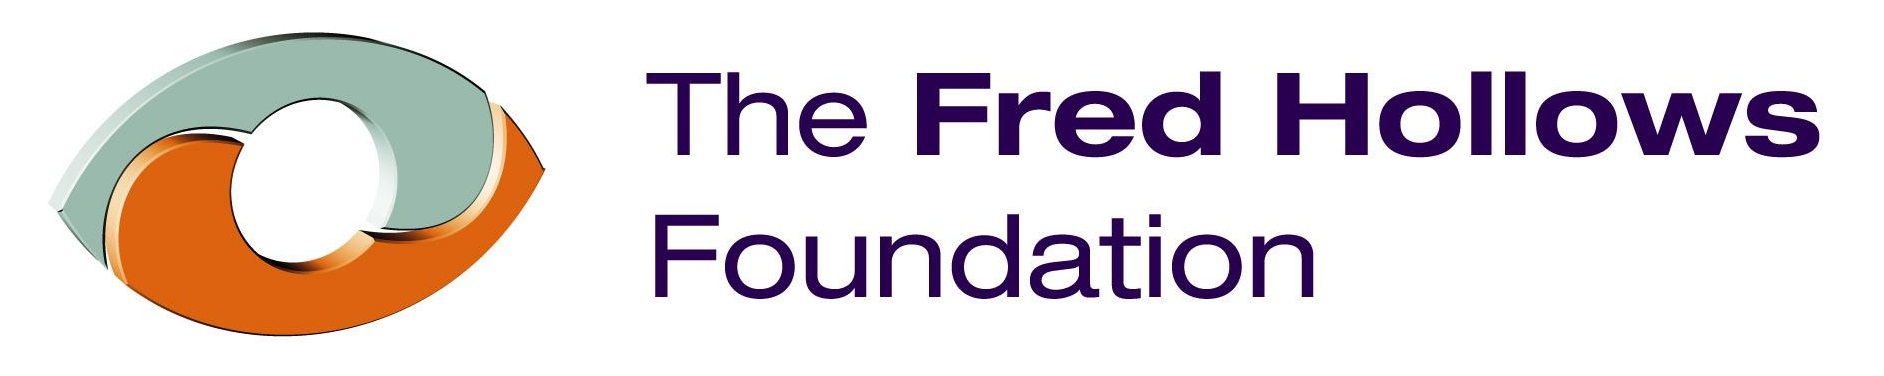 http://www.pakpositions.com/company/the-fred-hollows-foundation